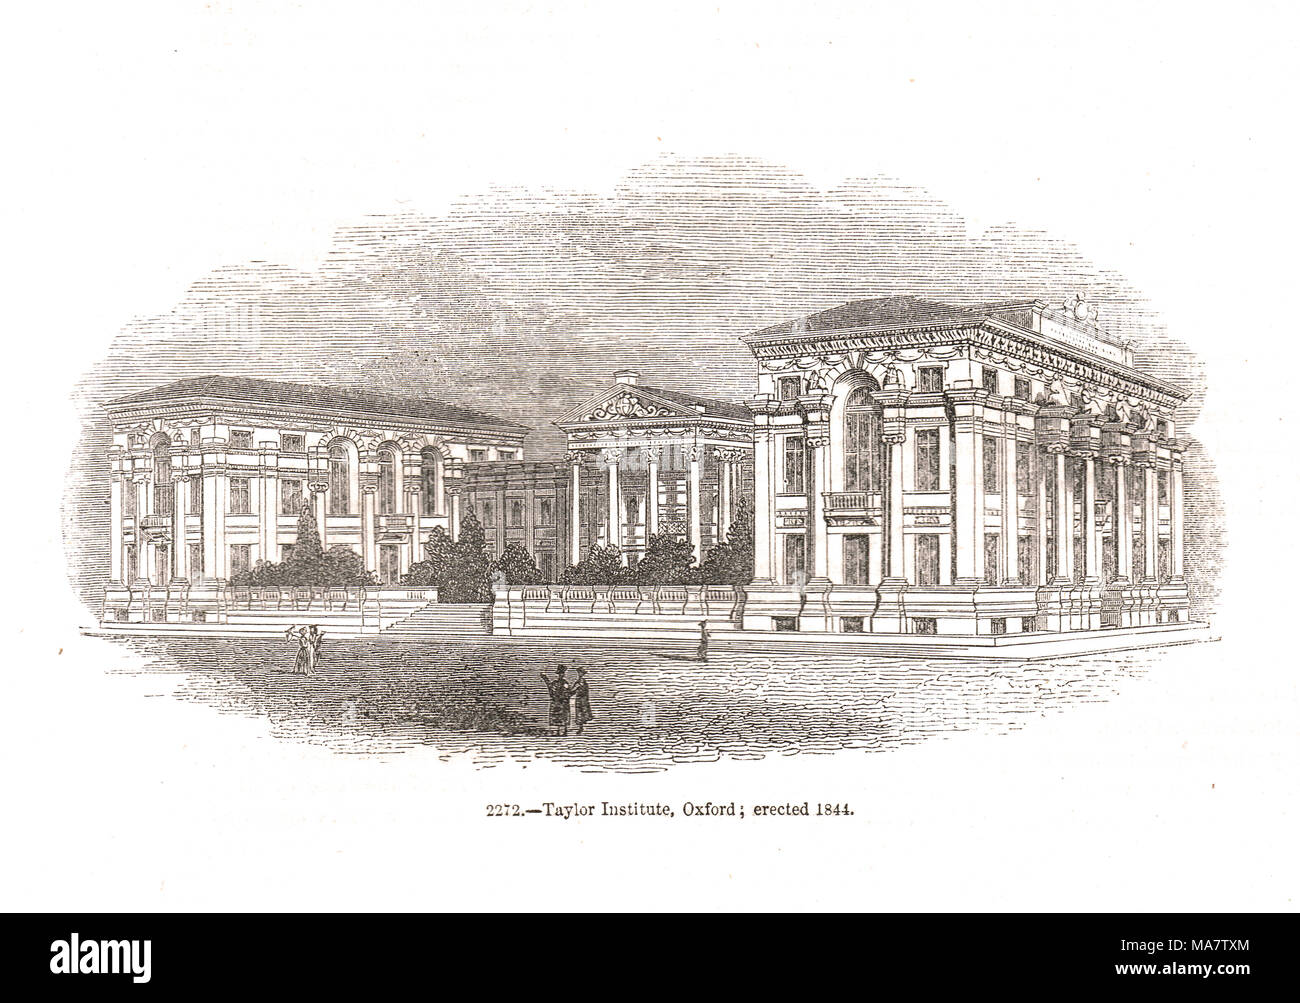 Ashmolean Museum and Taylor Institution, Beaumont Street, St Giles', Oxford, England, erected 1844 - Stock Image